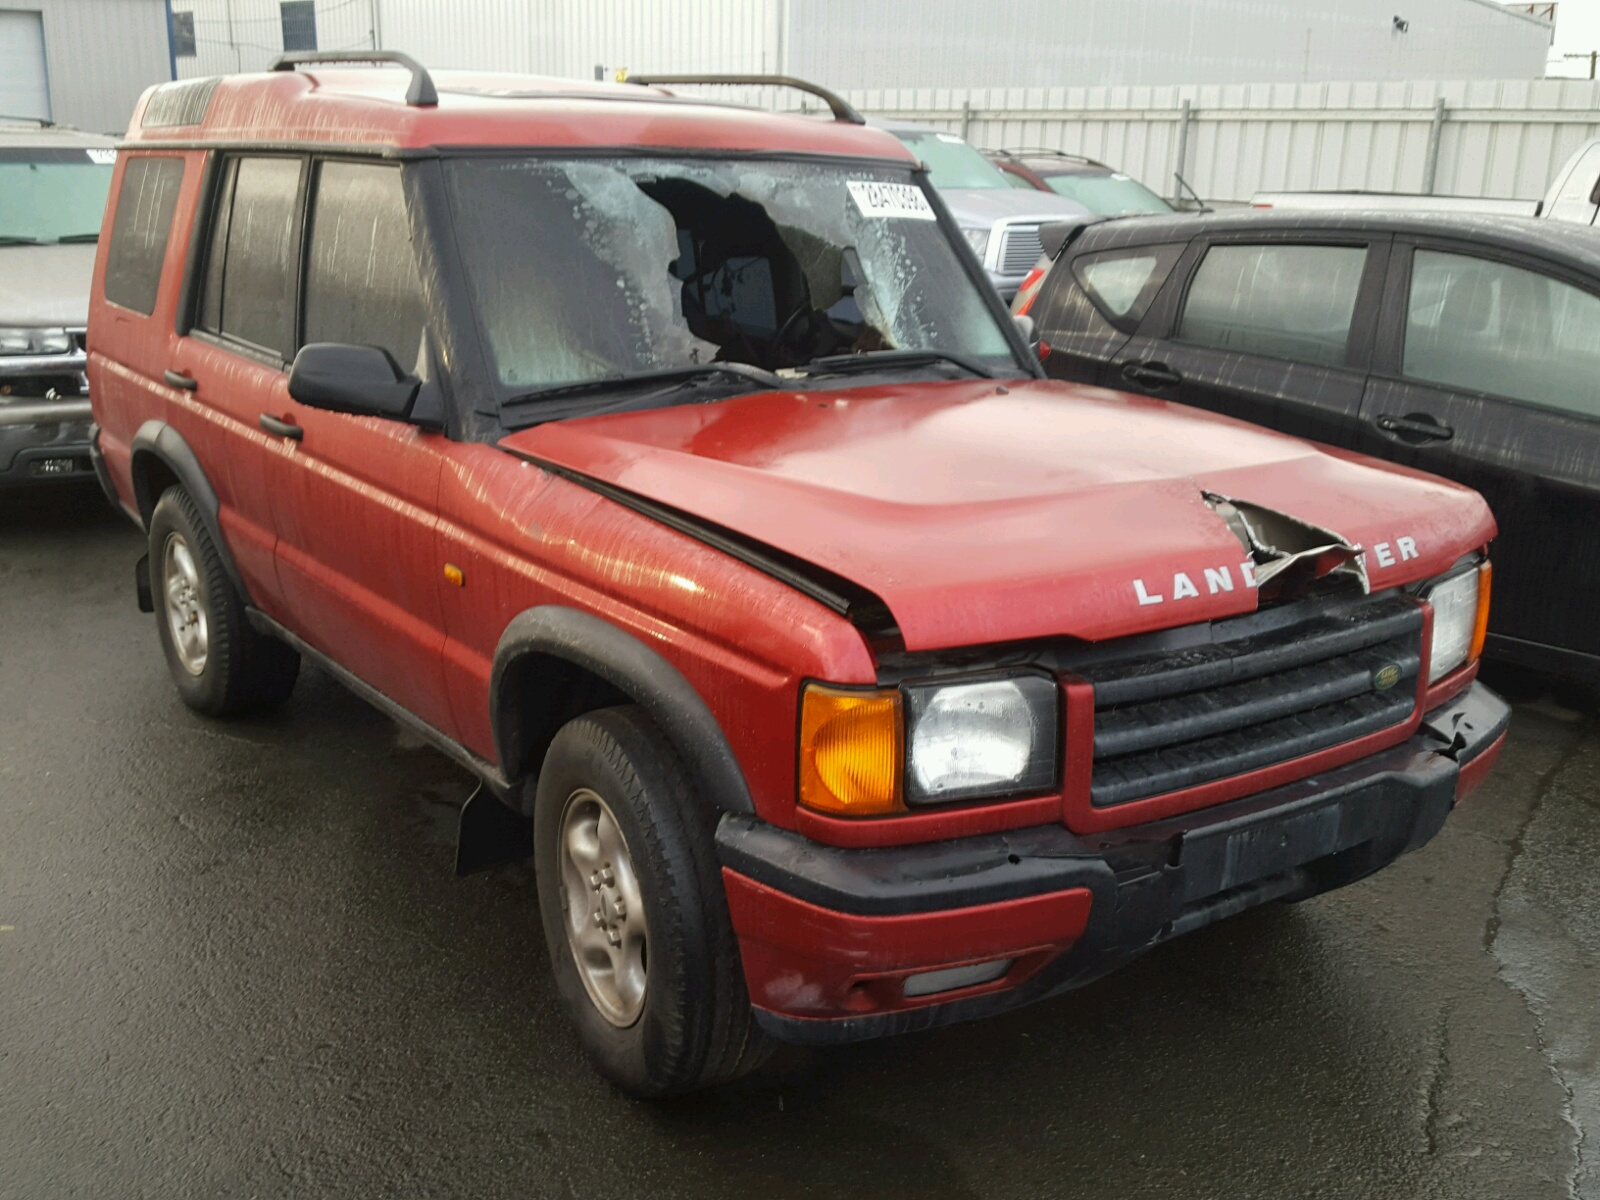 view ca auctions for discovery left en sale burgundy certificate online auto carfinder vallejo land rover salvage lot copart on landrover in